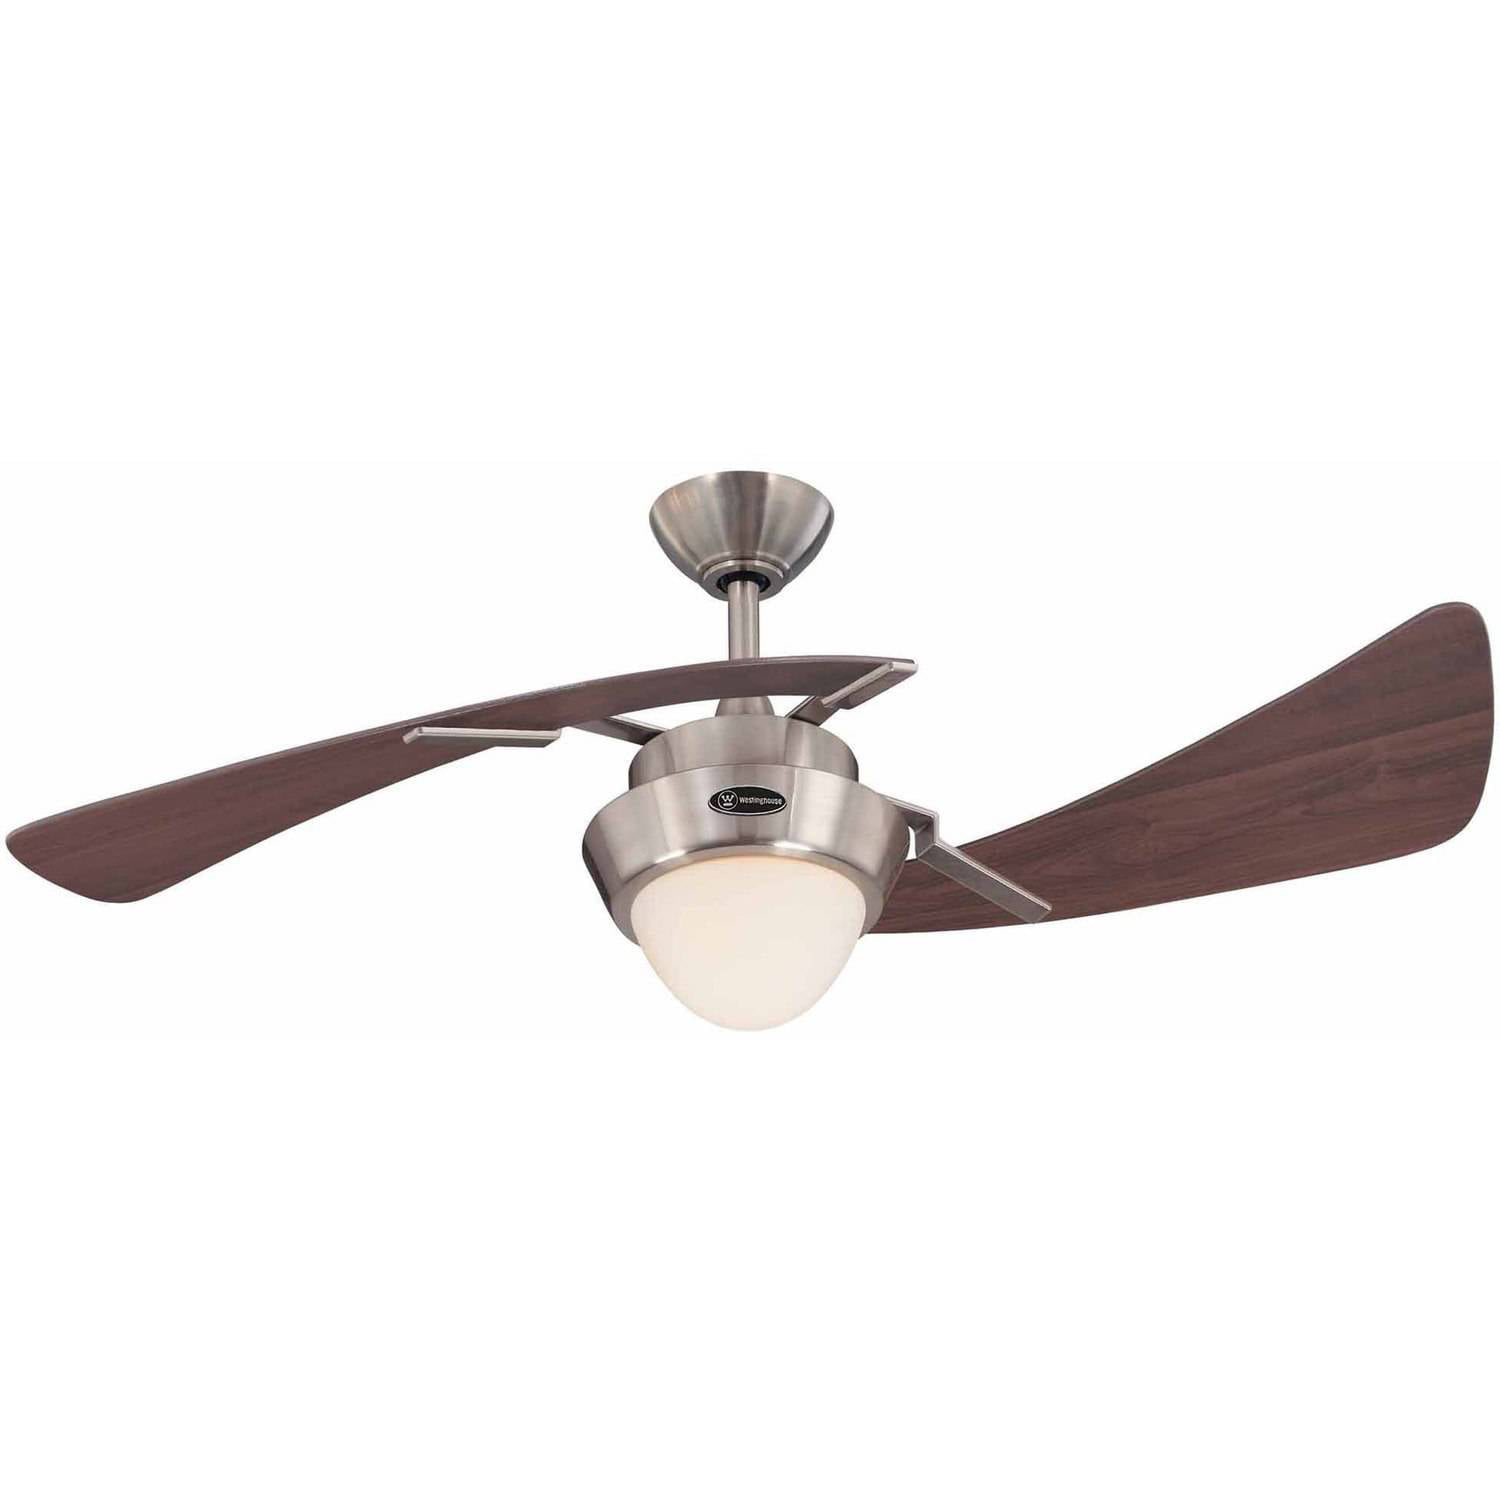 Westinghouse 7214100 48 brushed nickel 2 blade ceiling fan westinghouse 7214100 48 brushed nickel 2 blade ceiling fan walmart mozeypictures